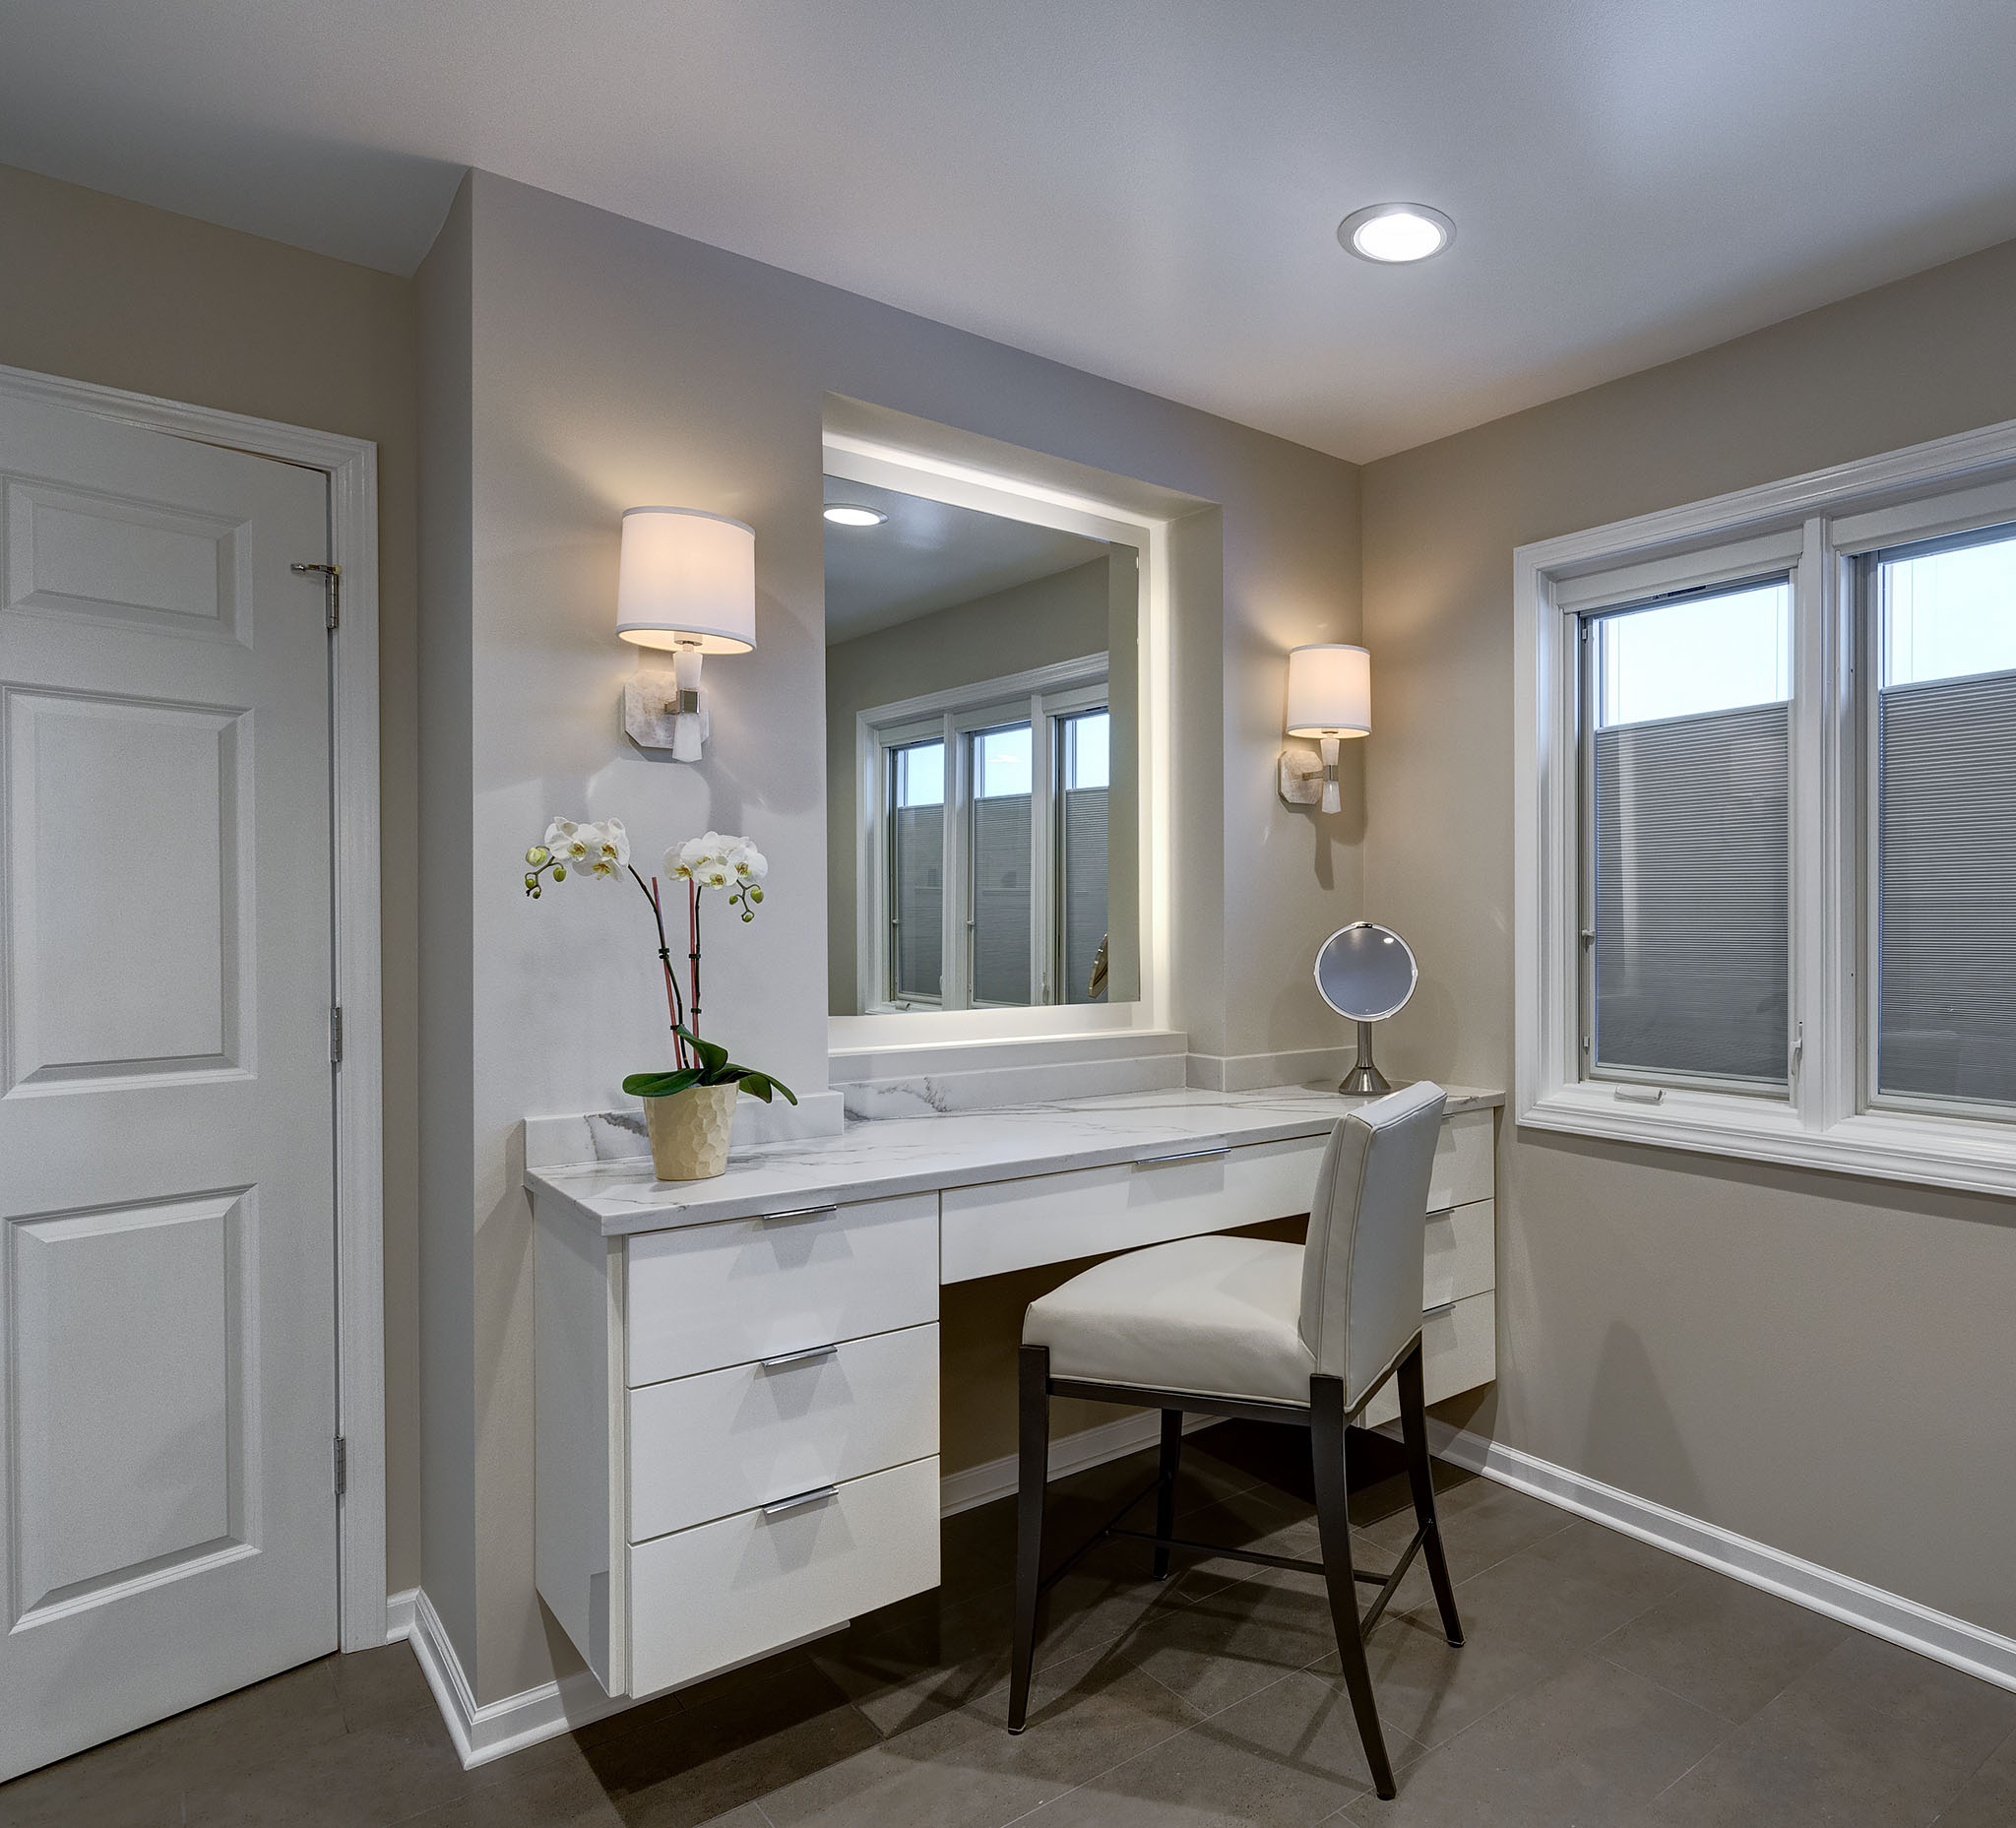 Master Bathroom Renovation In Northbrook Michael Menn Ltd - Bathroom remodeling northbrook